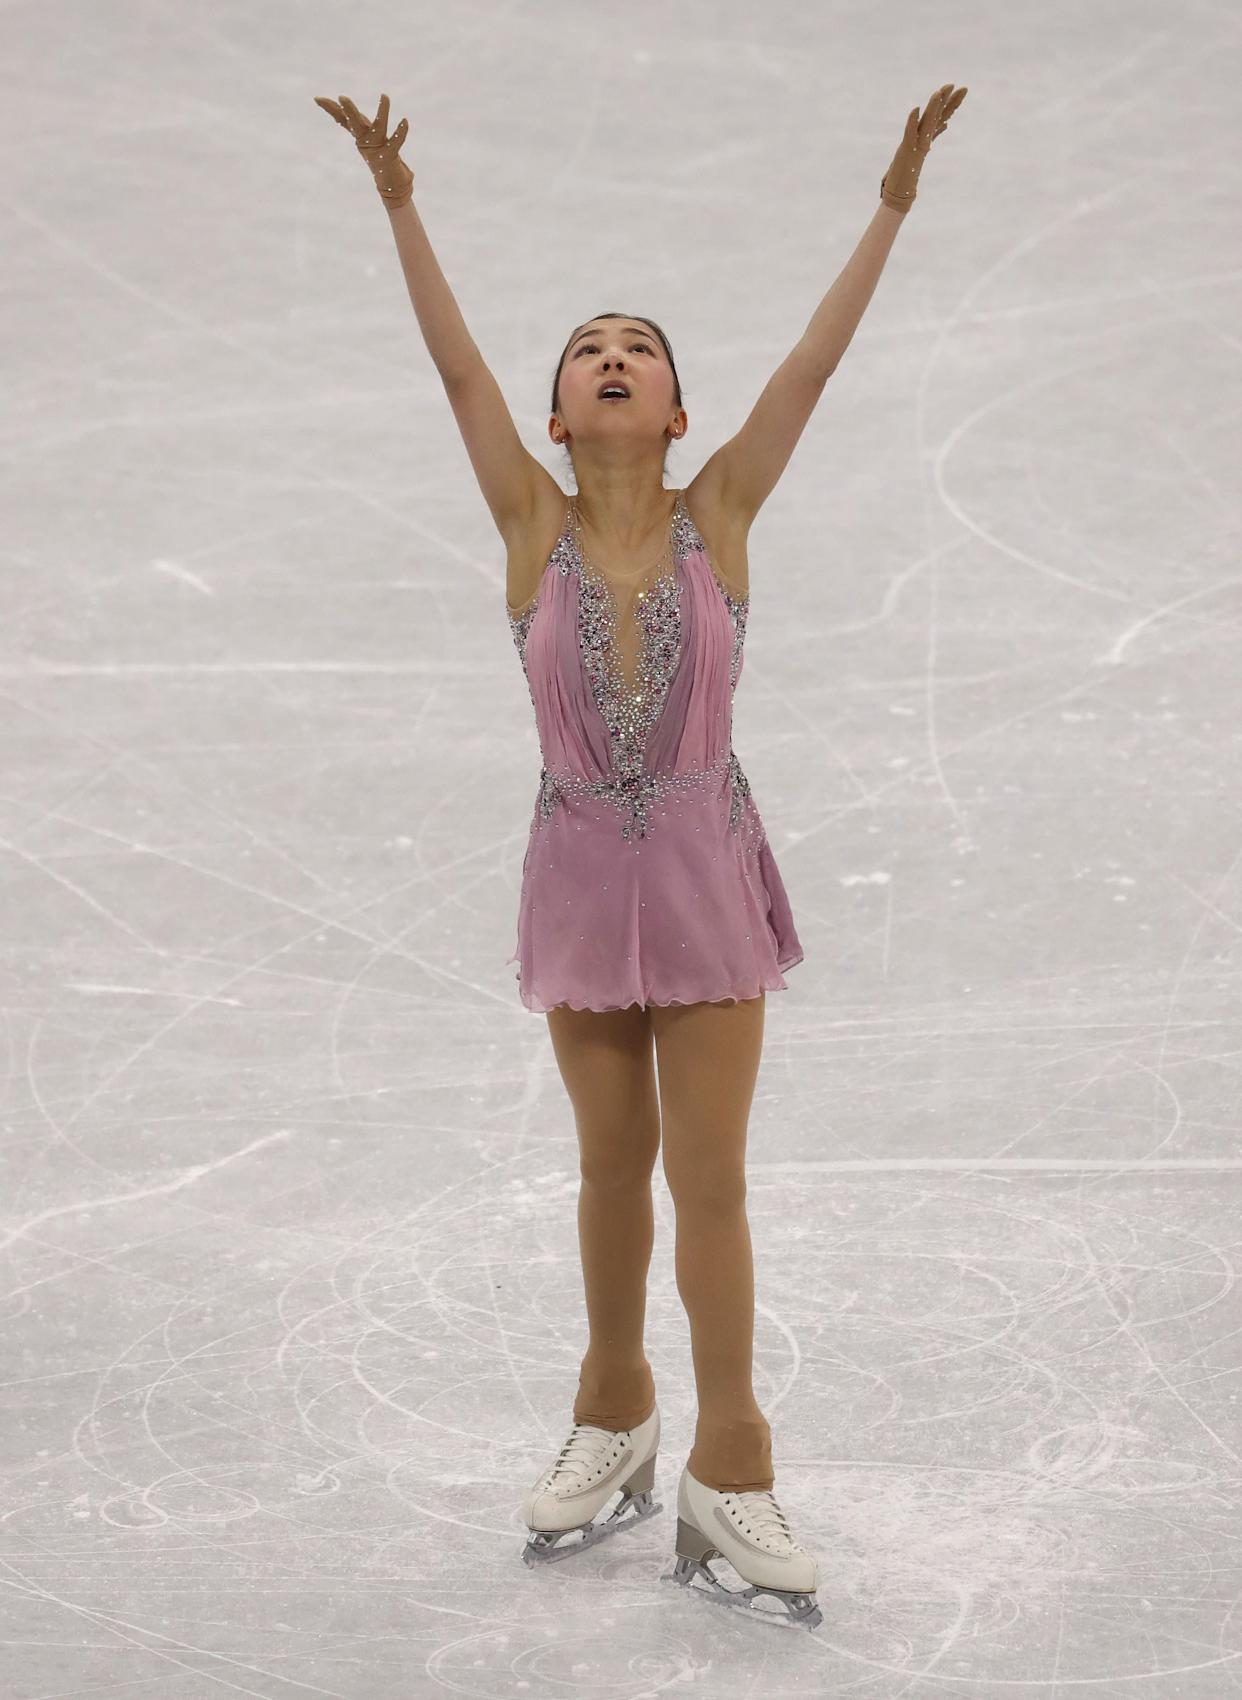 The Kazakh skater wore this pretty pink costume for her free skate during the ladies single event.